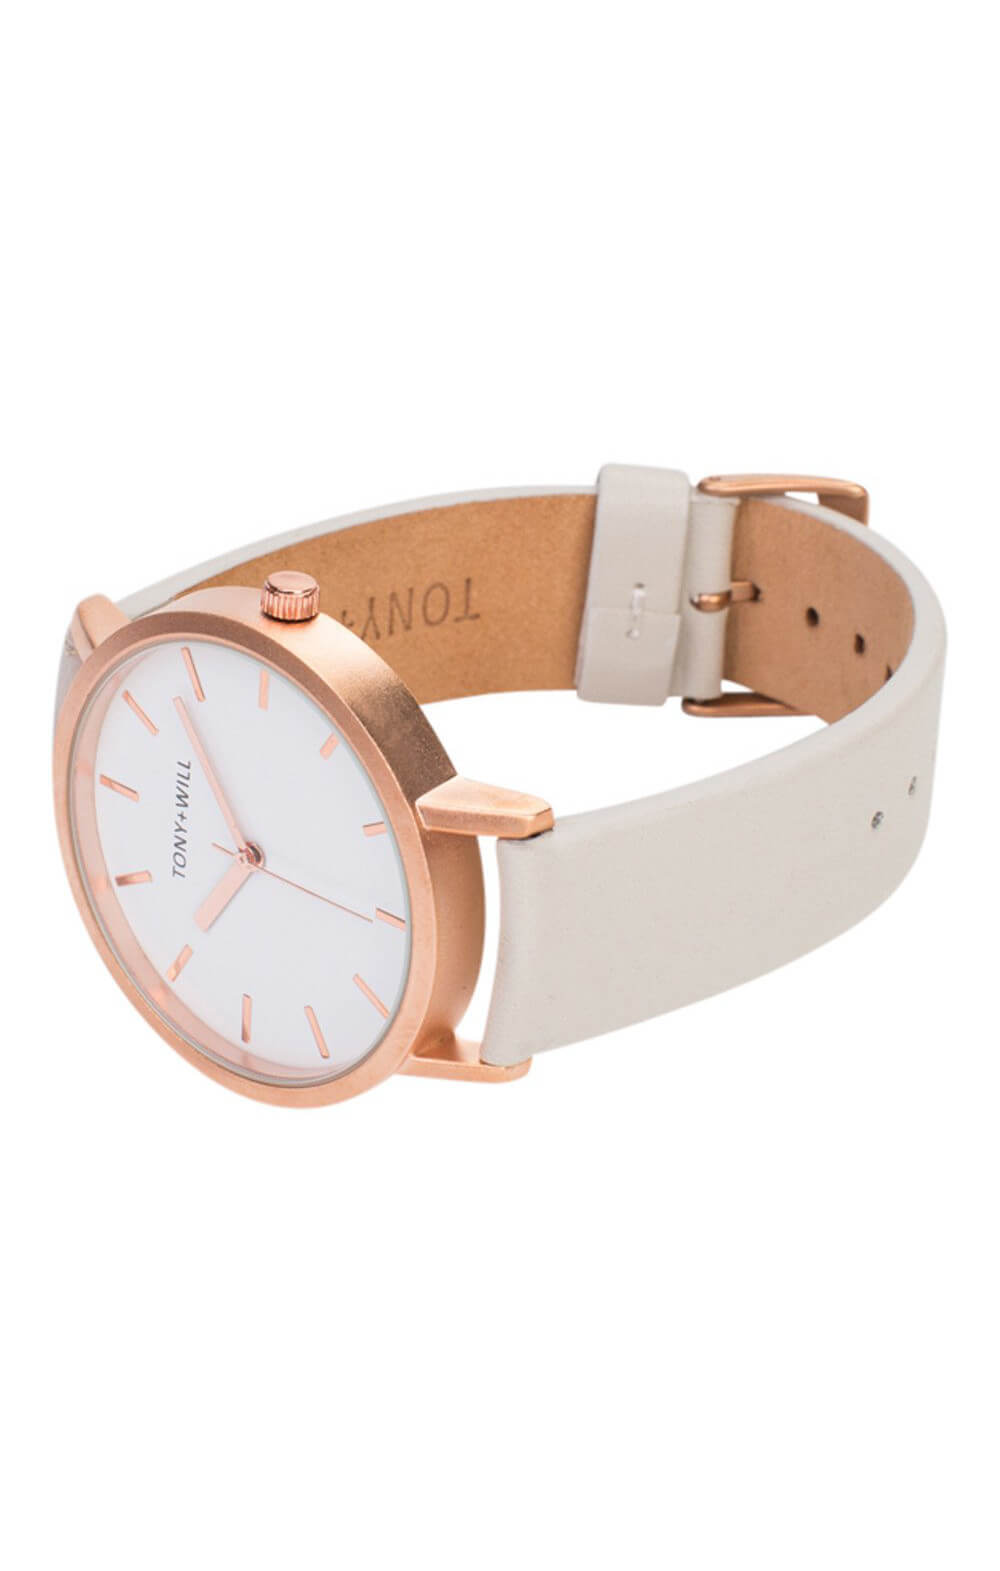 tony + will rose gold grey white watch